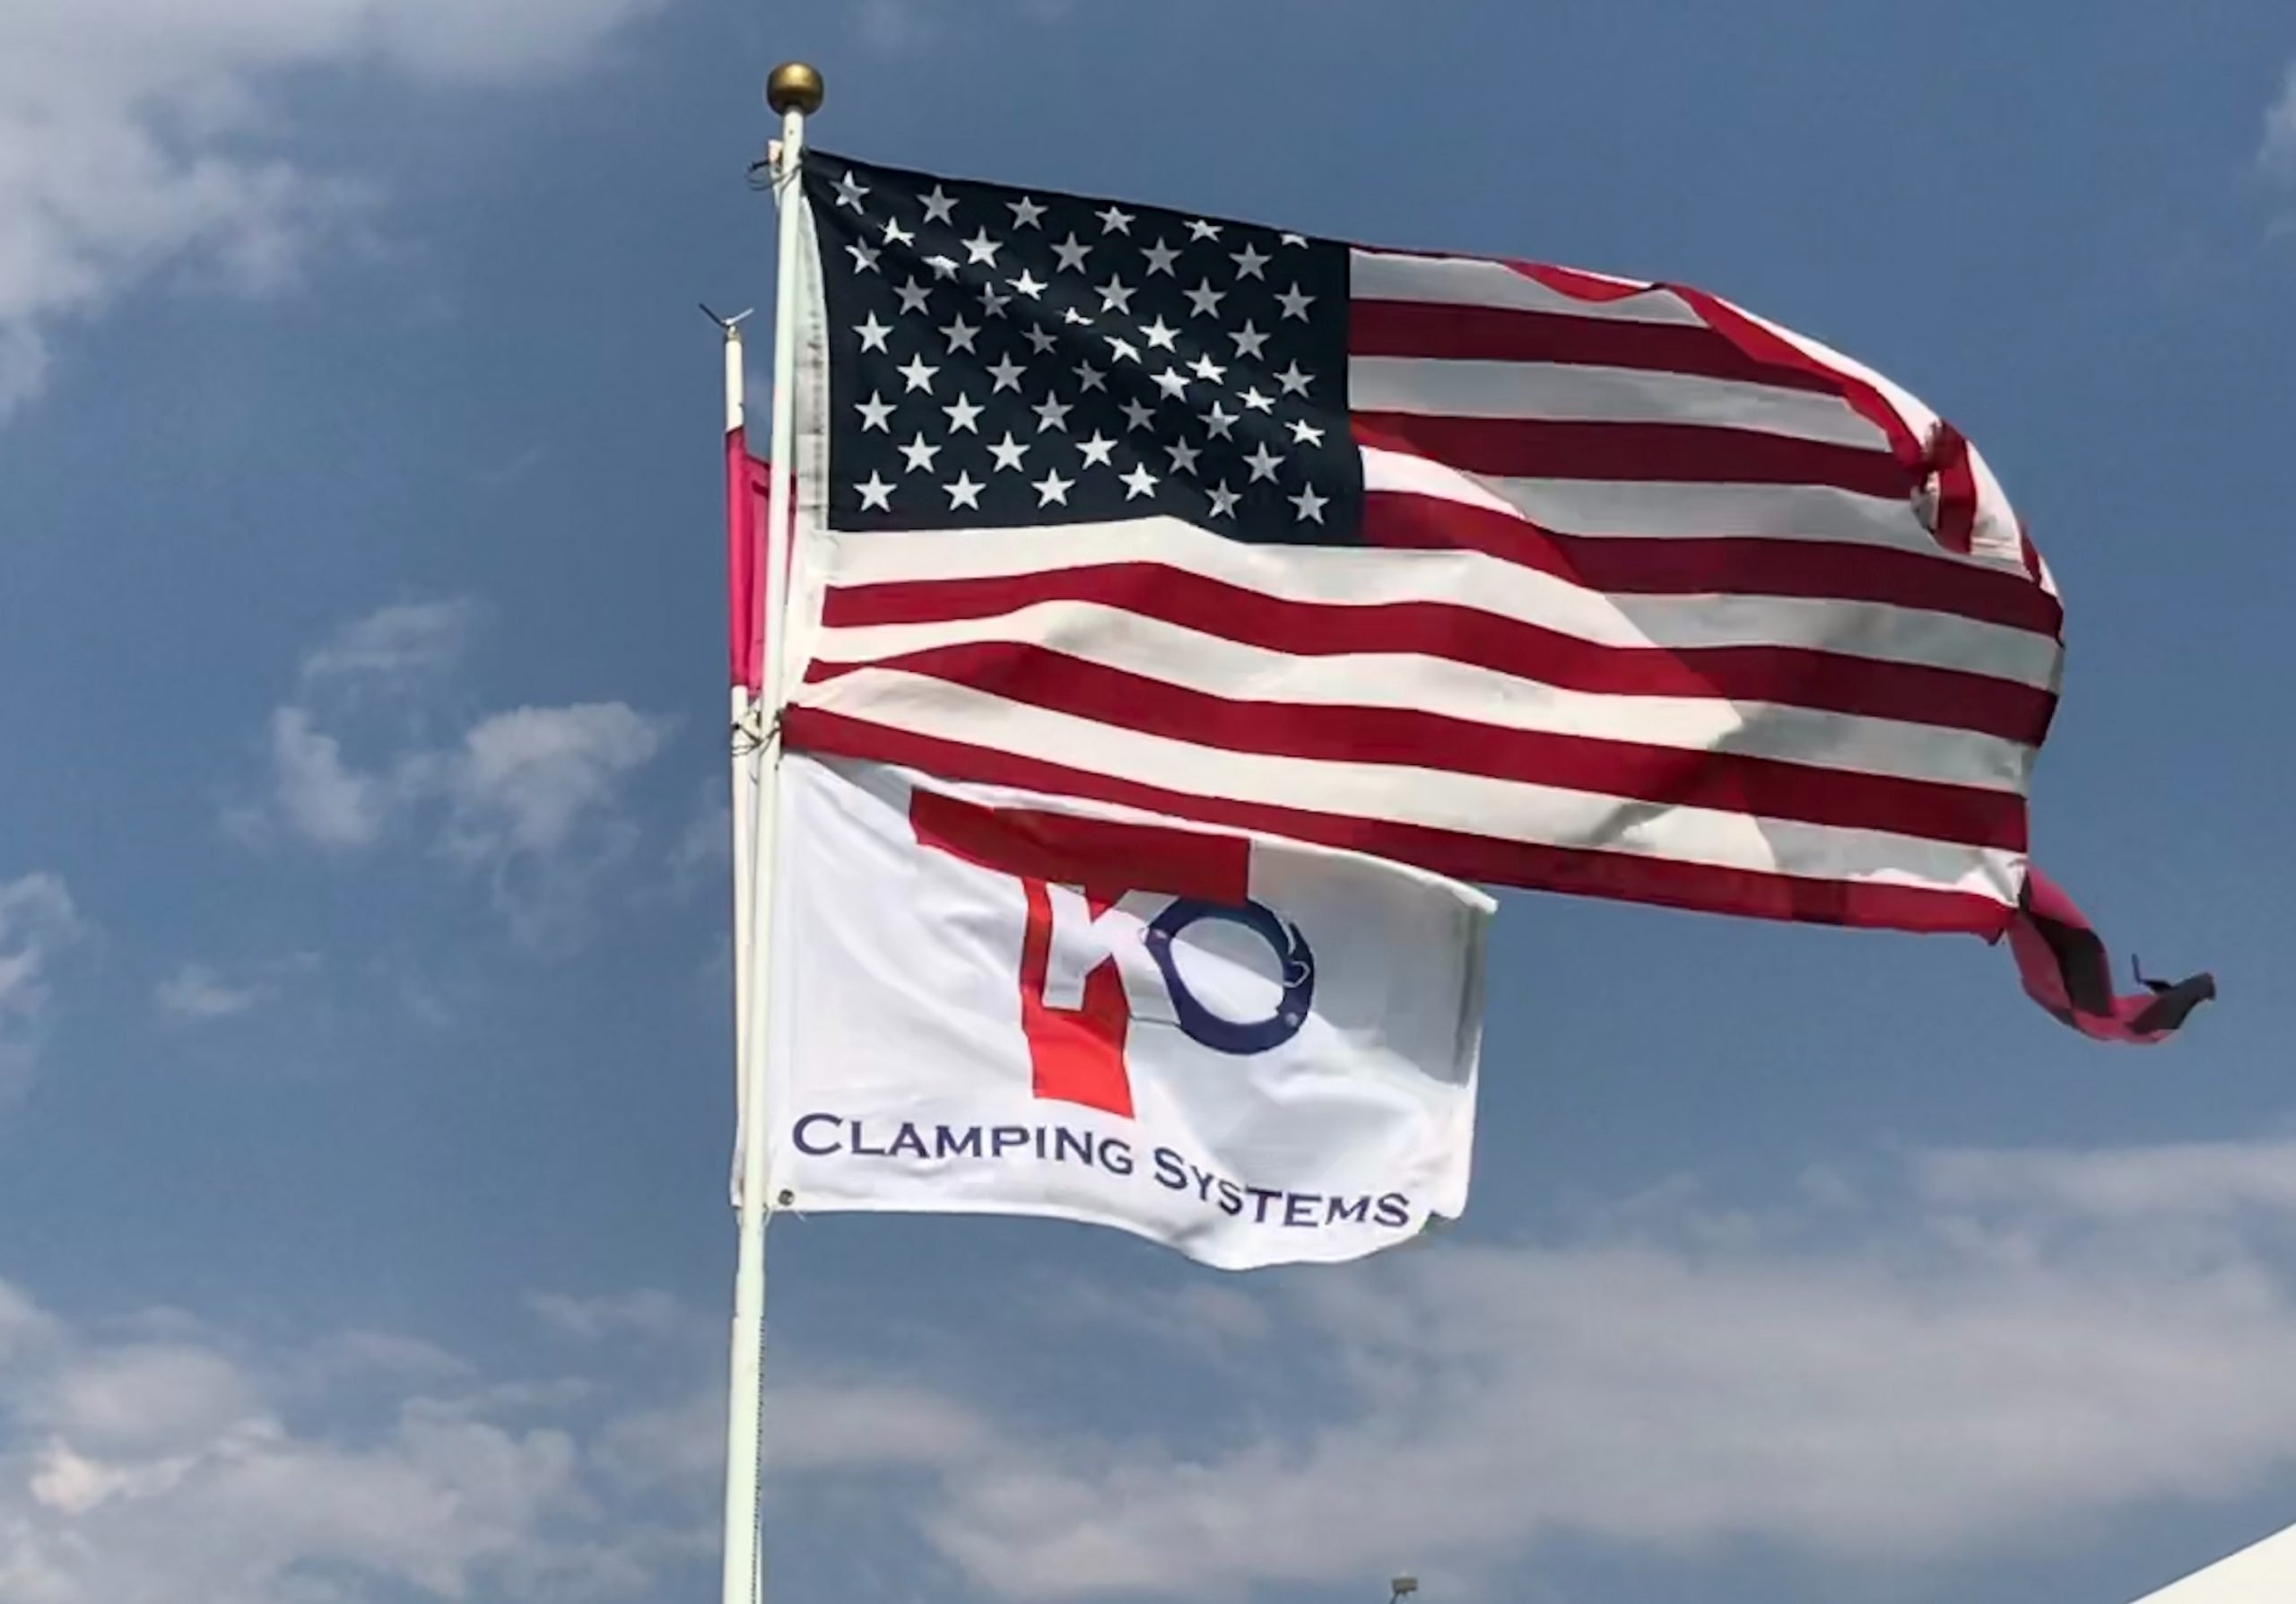 TKO CLAMPING SYSTEMS flag with American flag